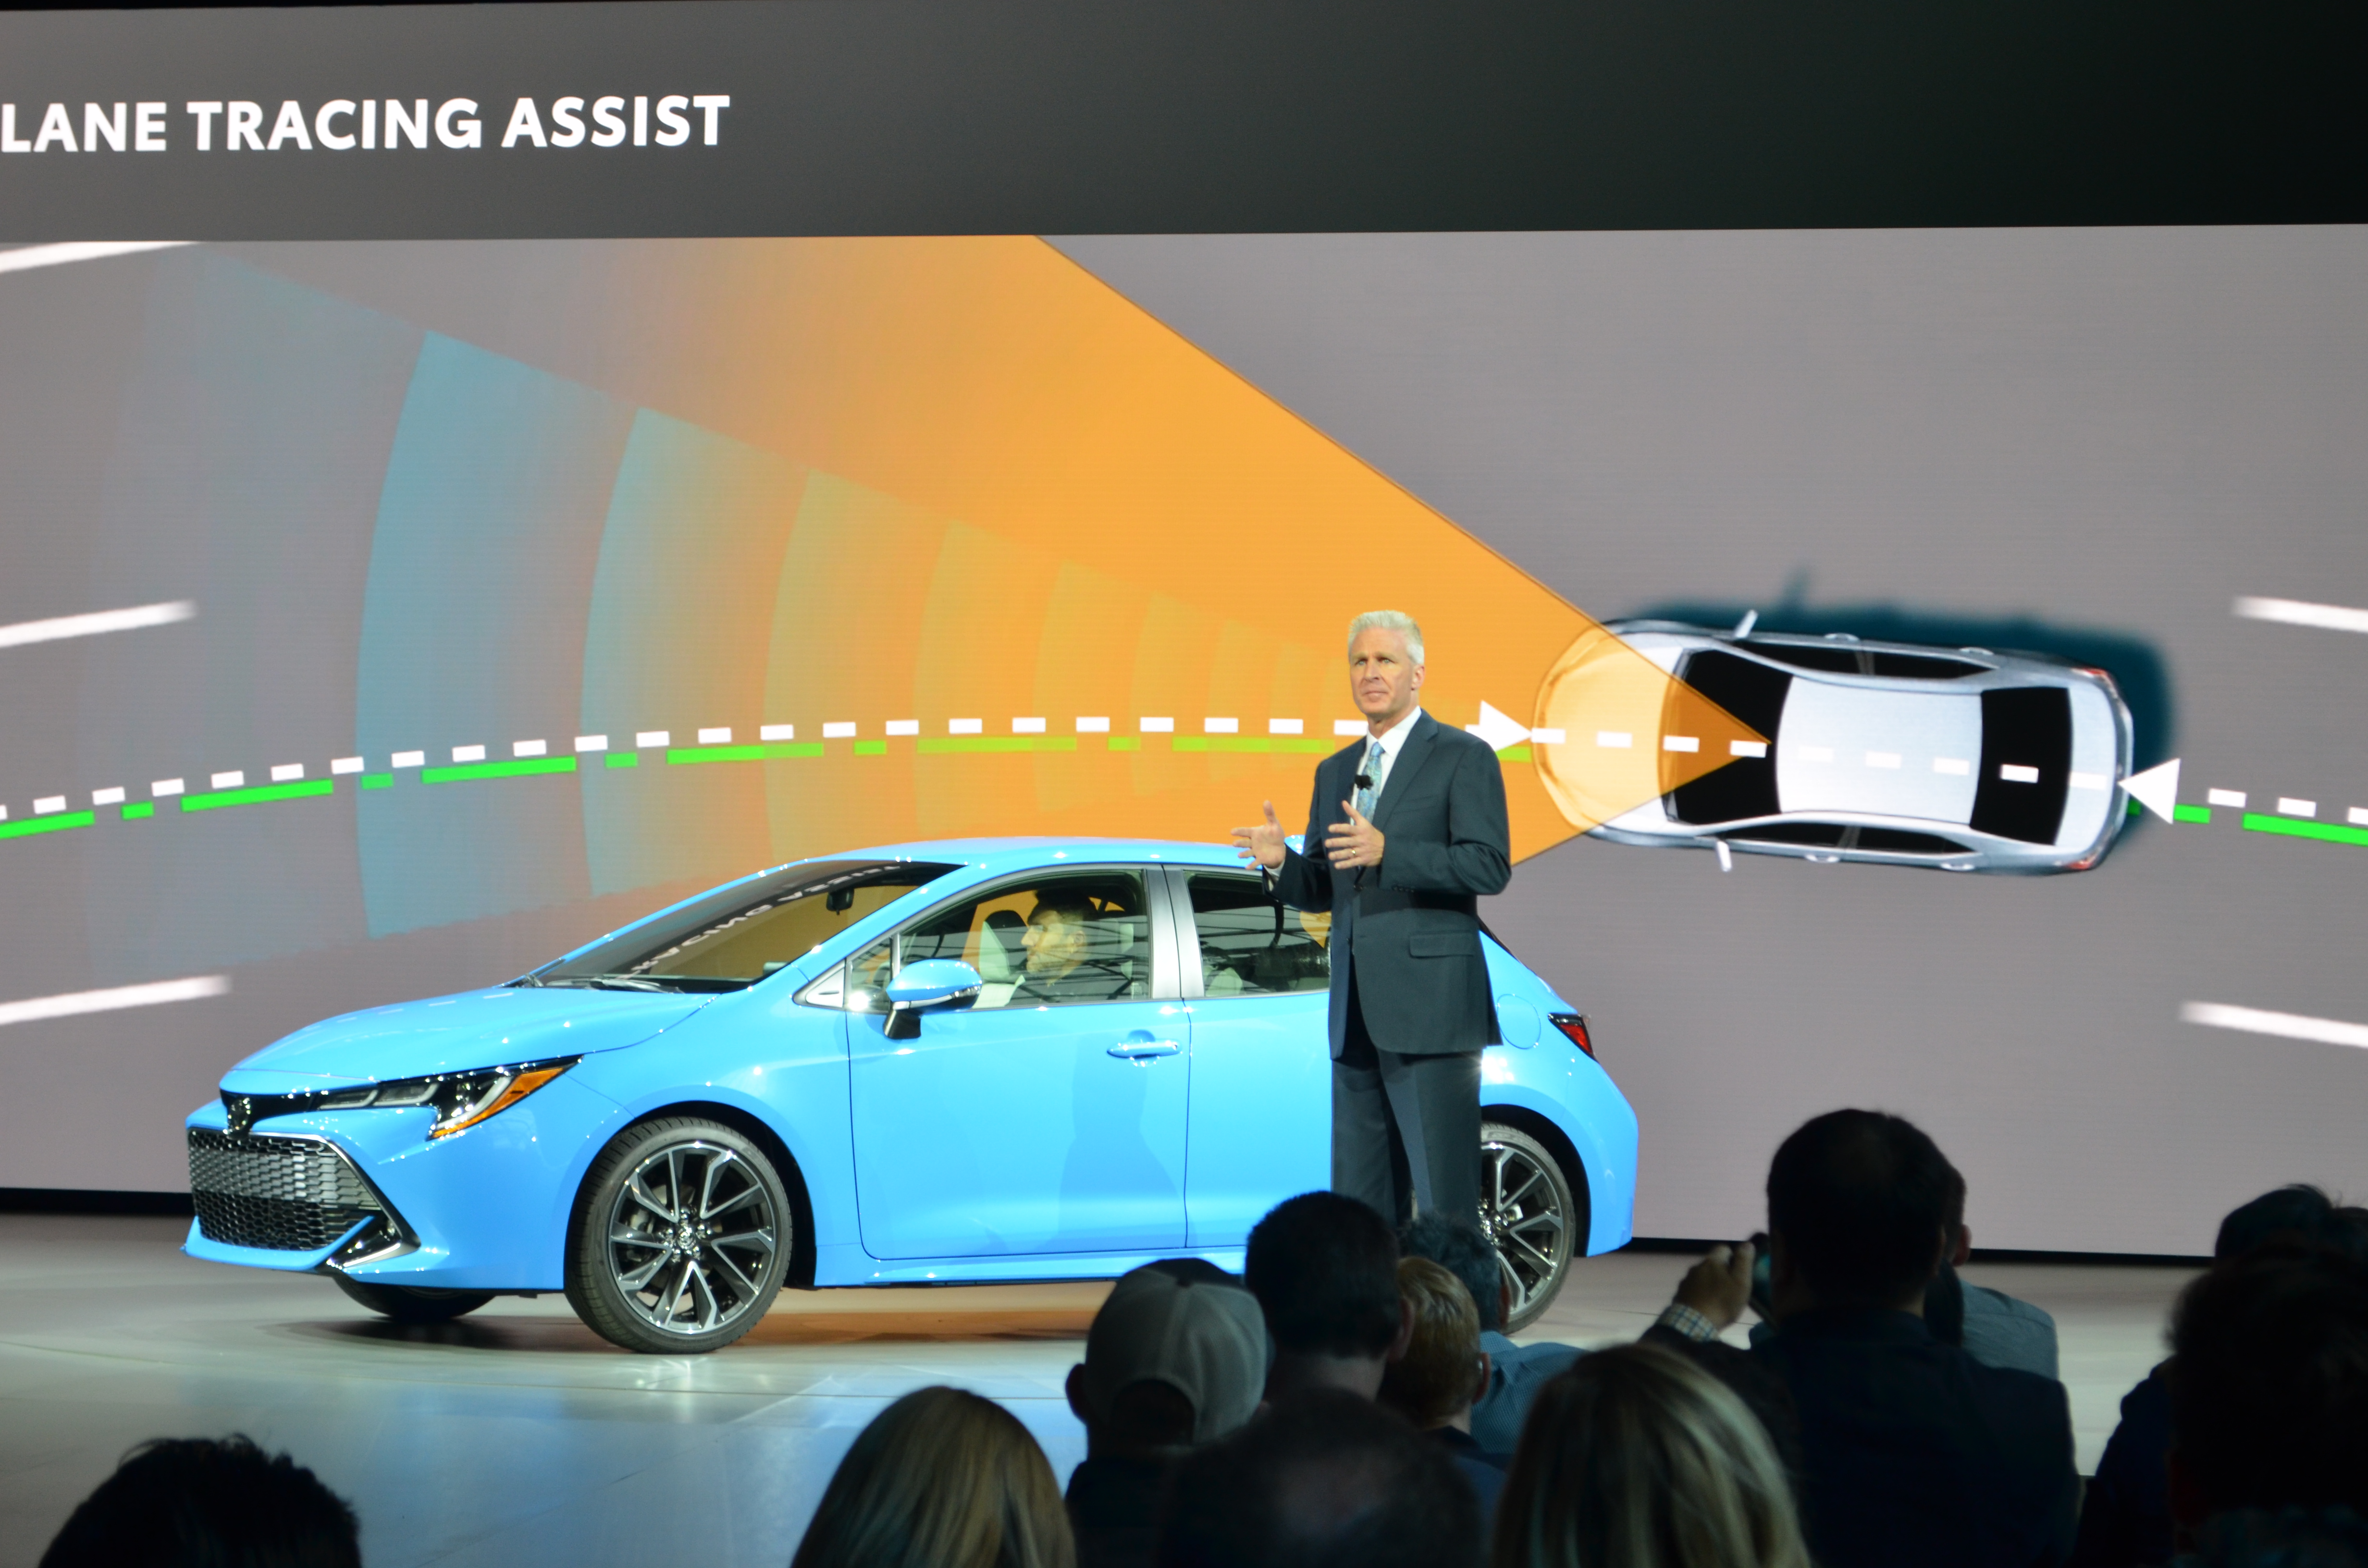 ack Hollis, Group Vice President of U.S. Sales, Unveils New Toyota Corolla Hatchback